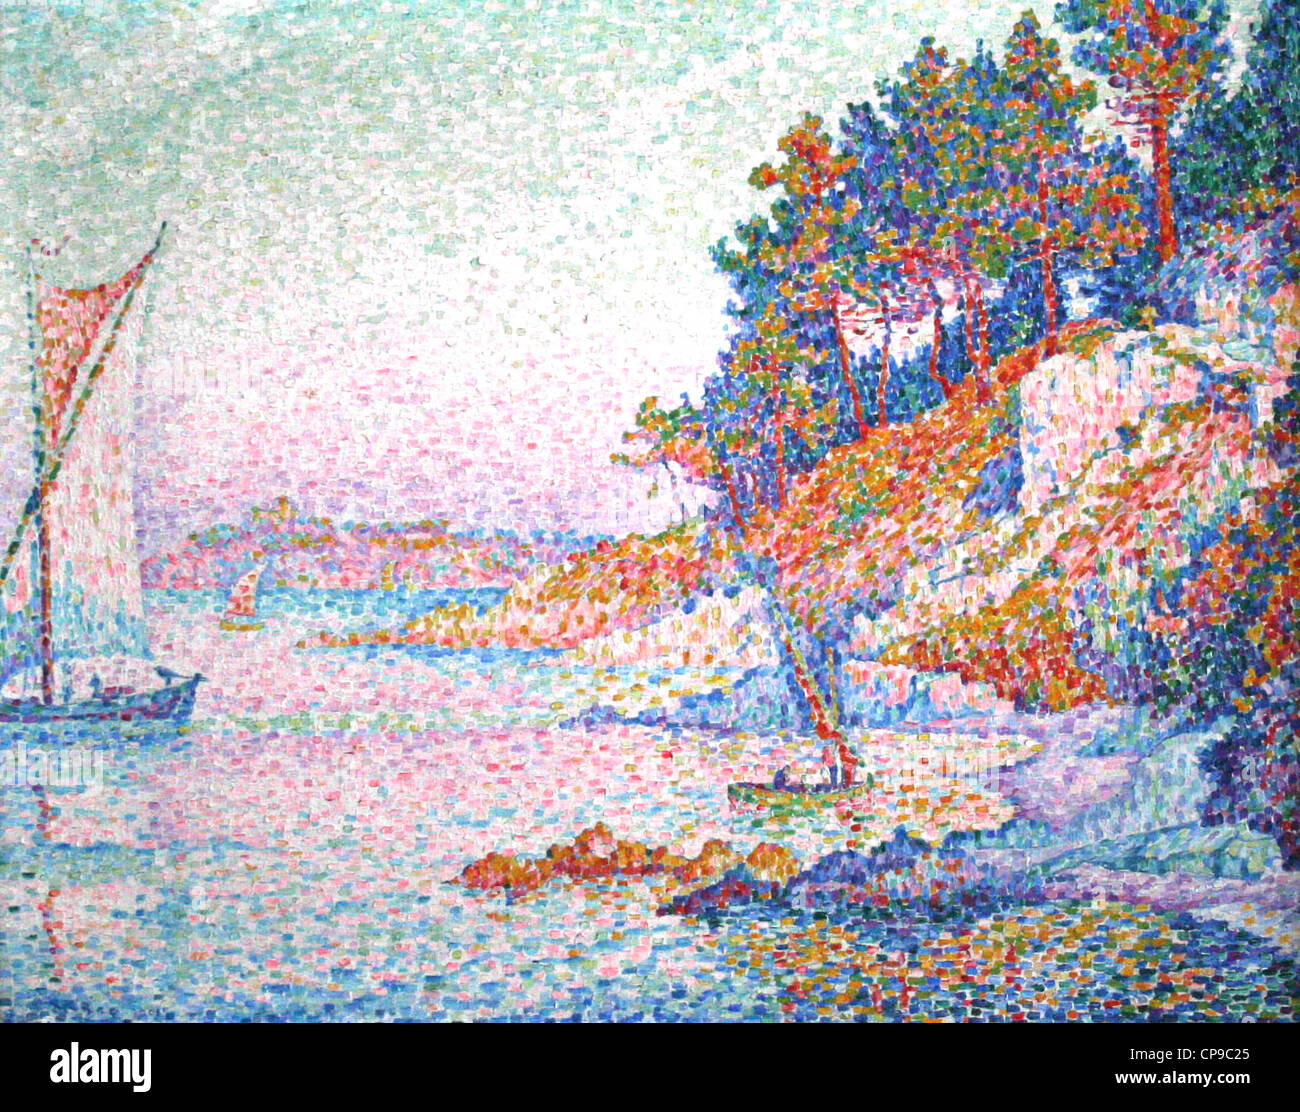 French paintings in the Royal Museums of Fine Arts of Belgium     Paul Signac - Stock Image